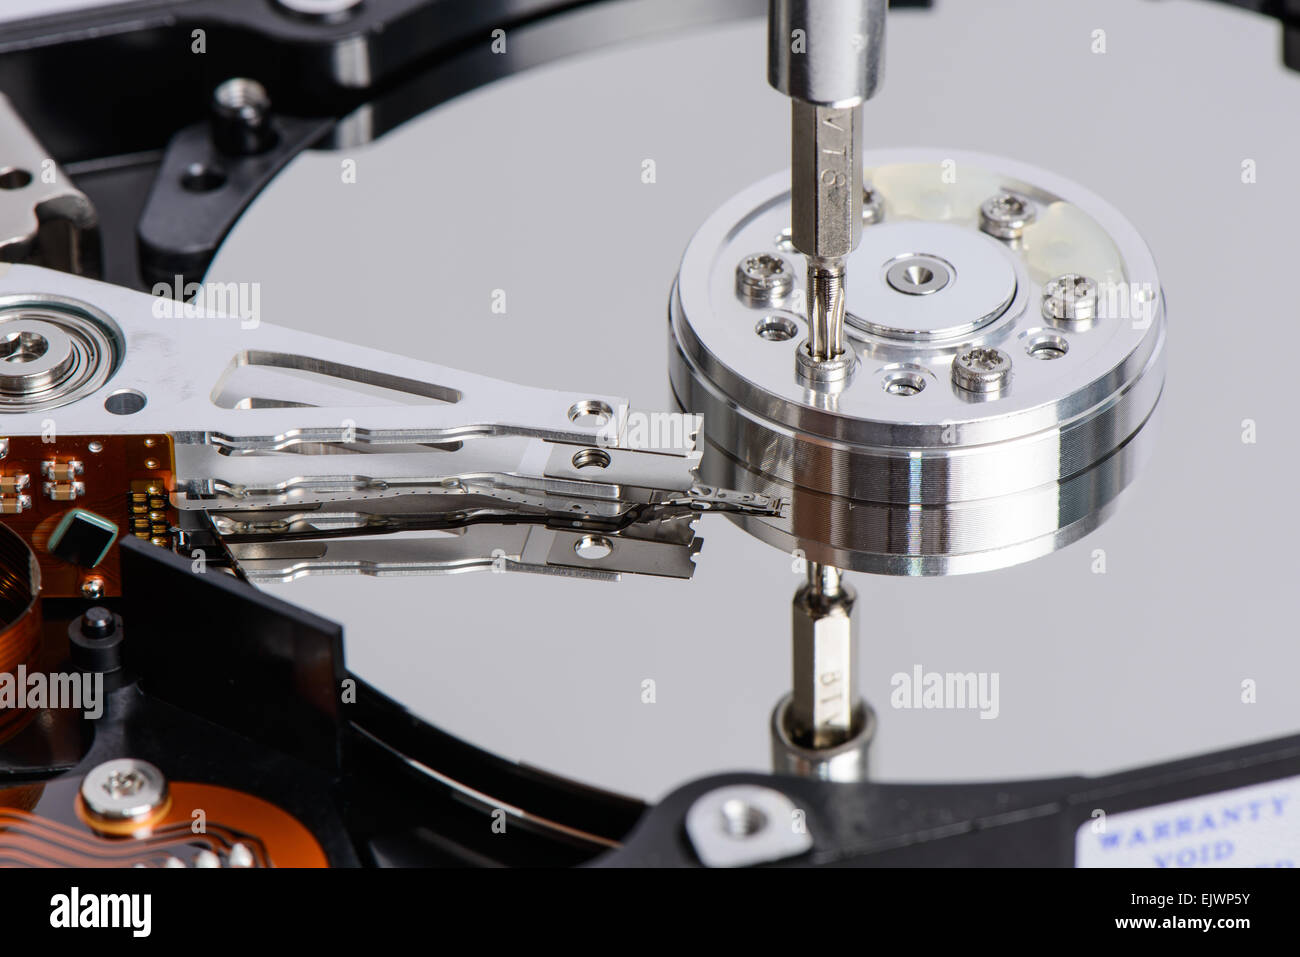 how to disassemble a hard drive